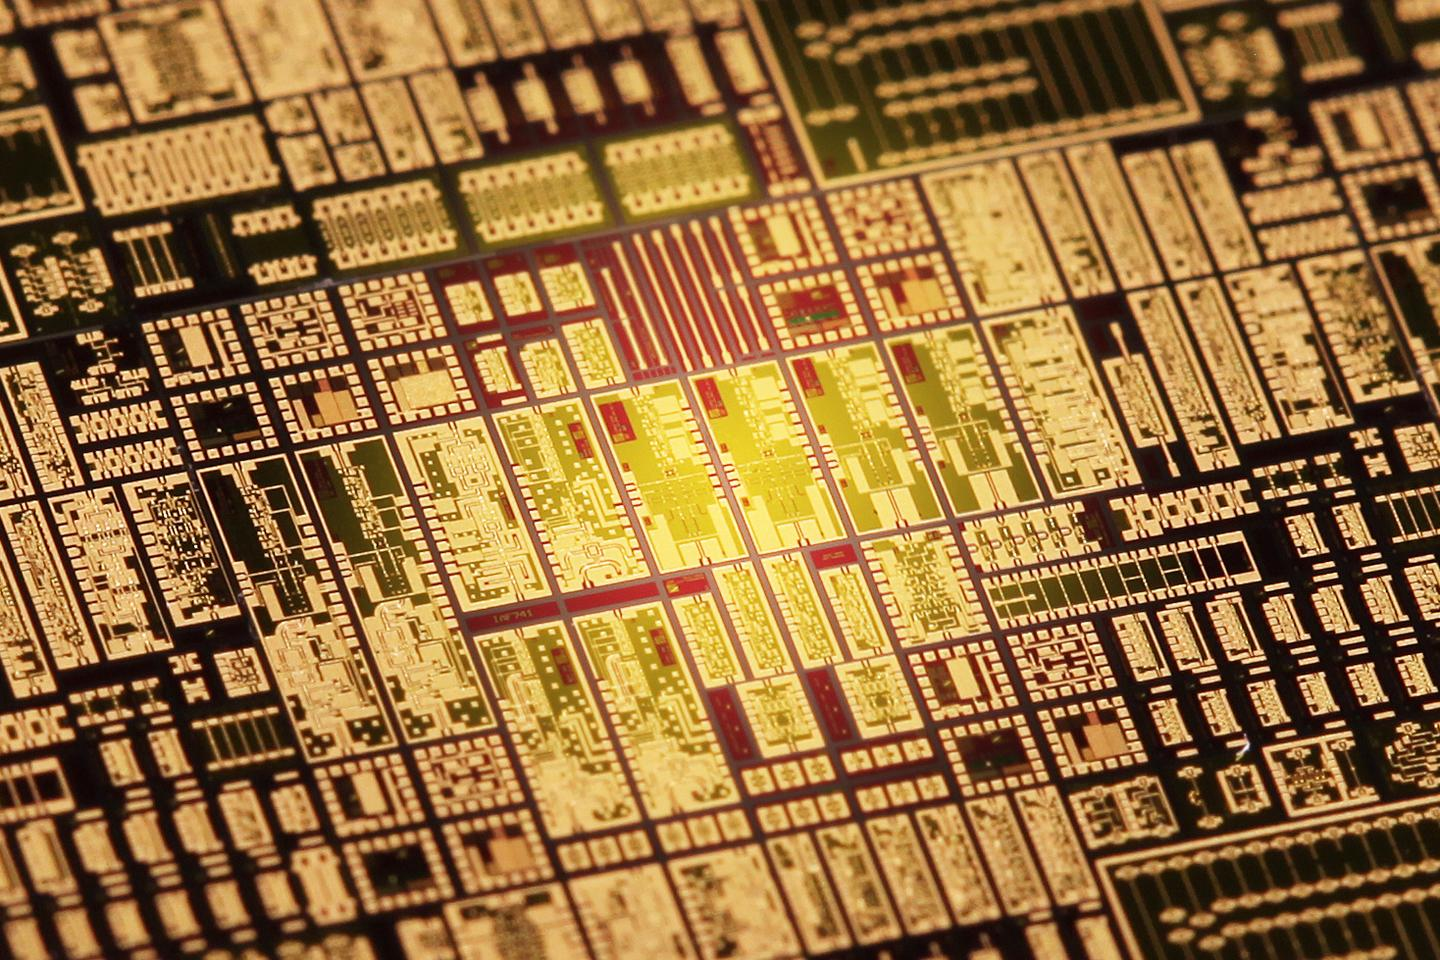 Micrograph of the 240 GHz transceiver chip, which measures only 1.5 x 4 mm (Photo: Sandra Iselin / Fraunhofer IAF)